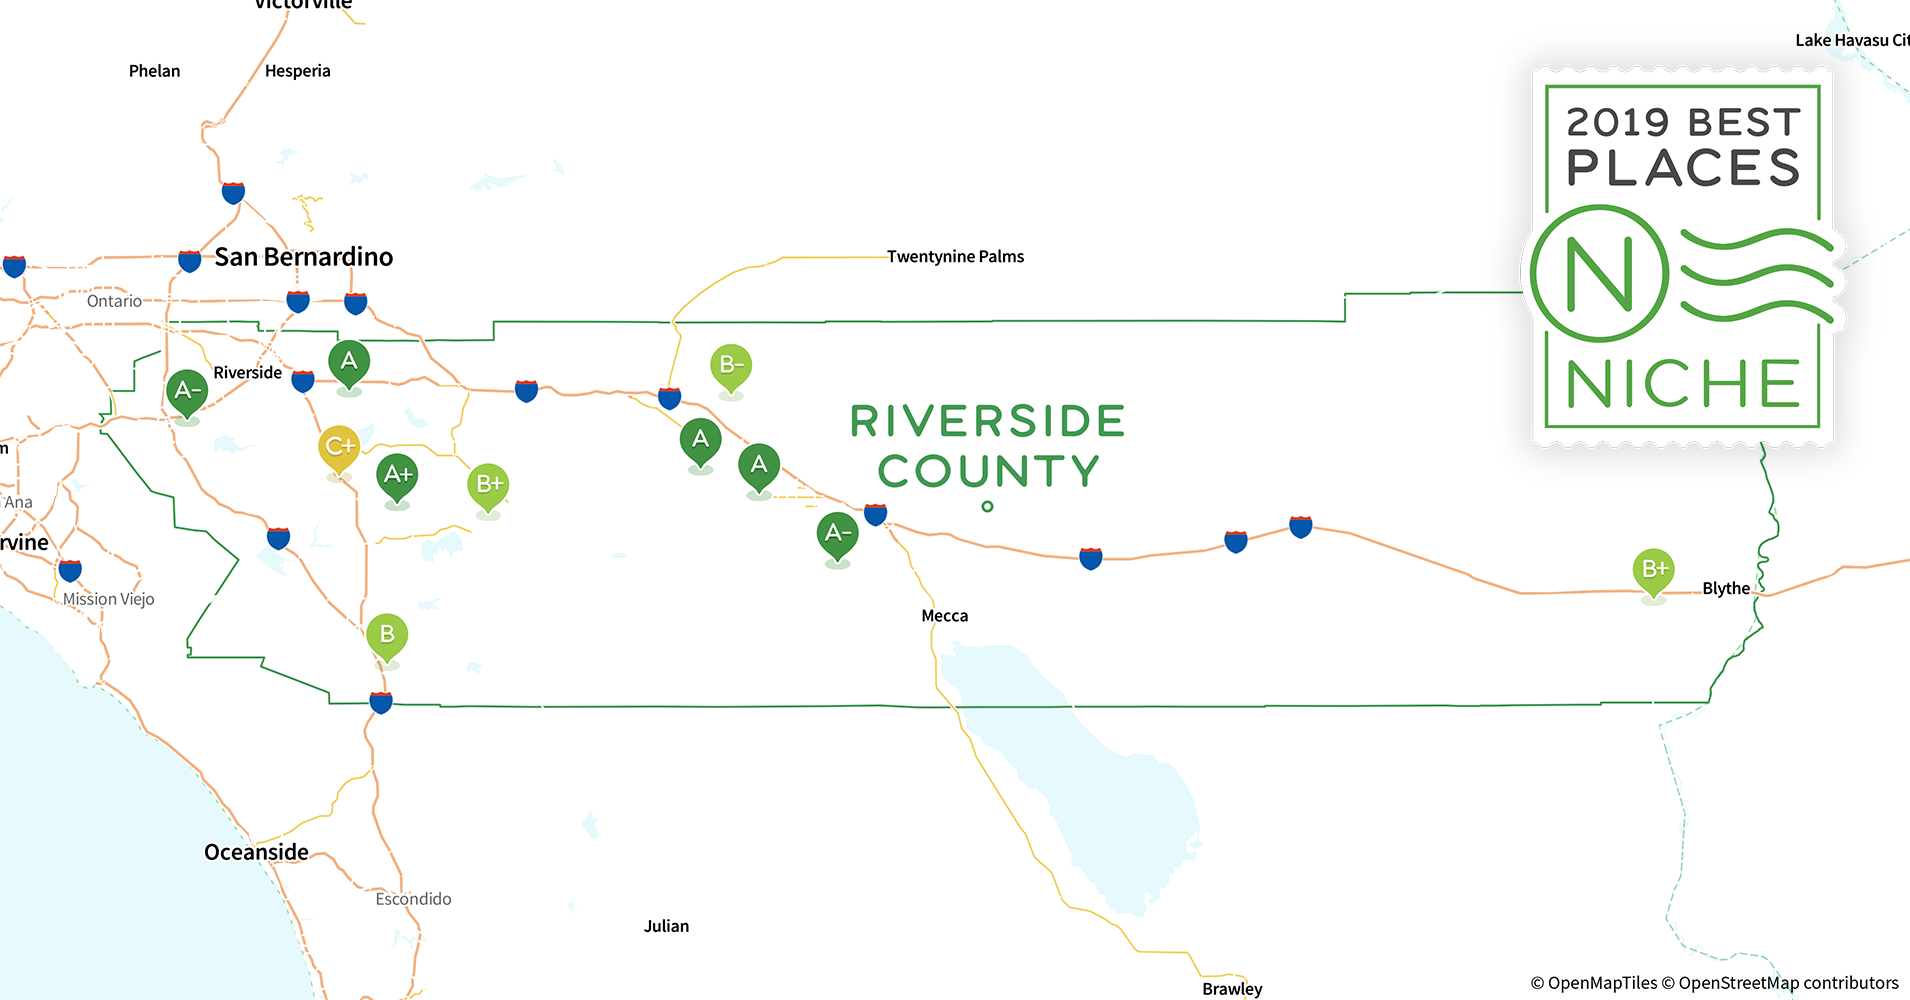 2019 Best Places to Buy a House in Riverside County, CA - Niche